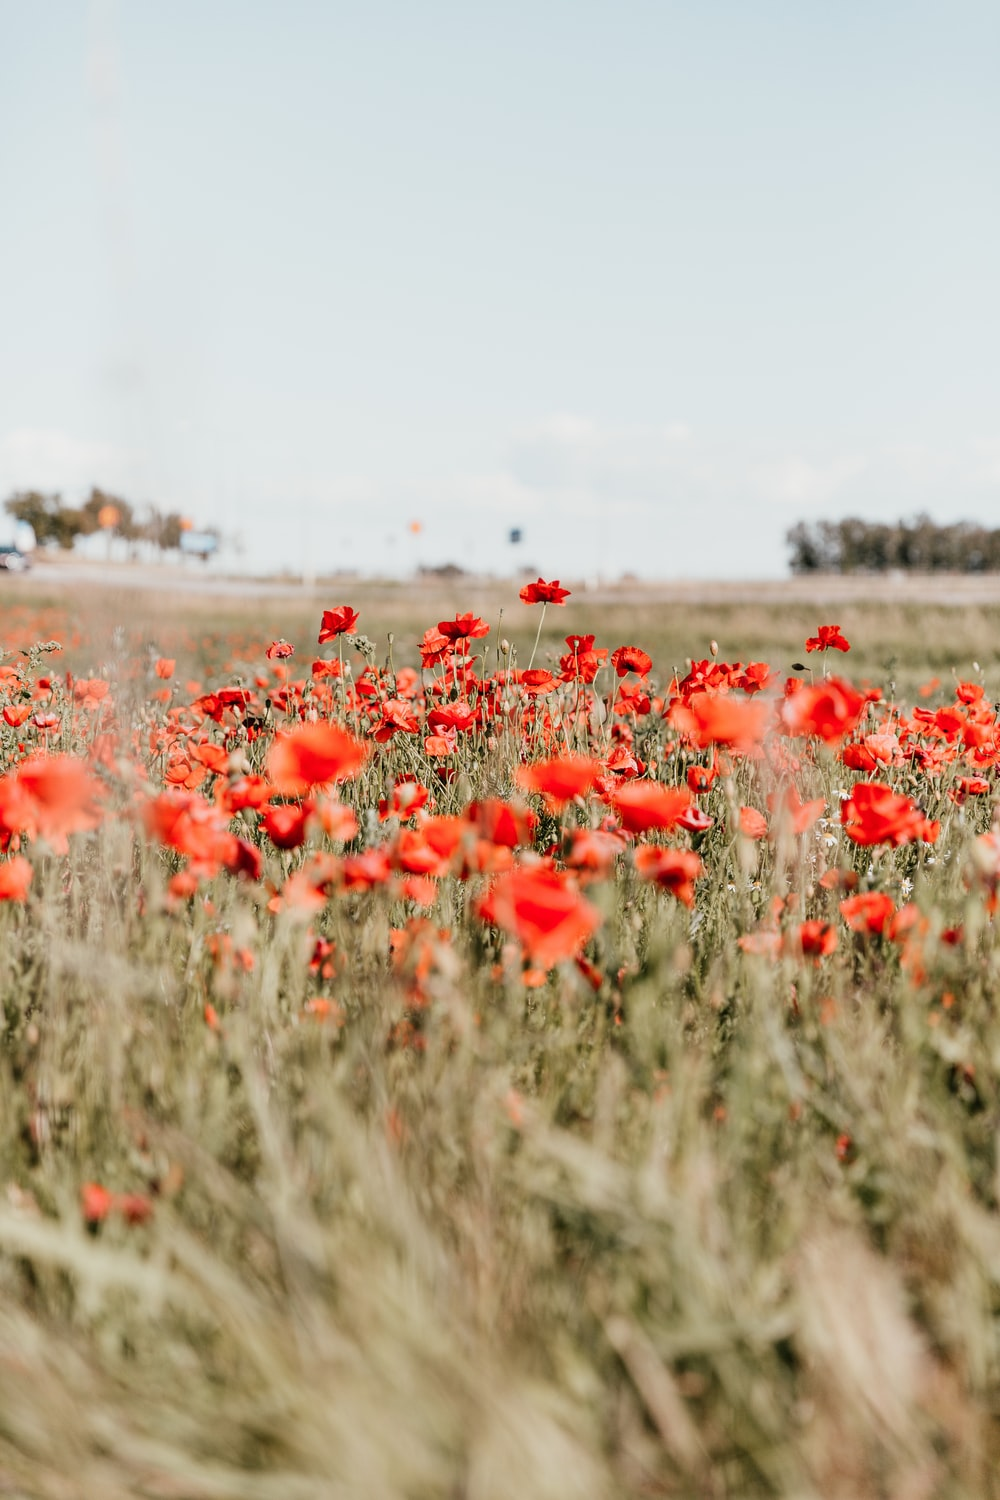 red poppy flowers field blooming at daytime